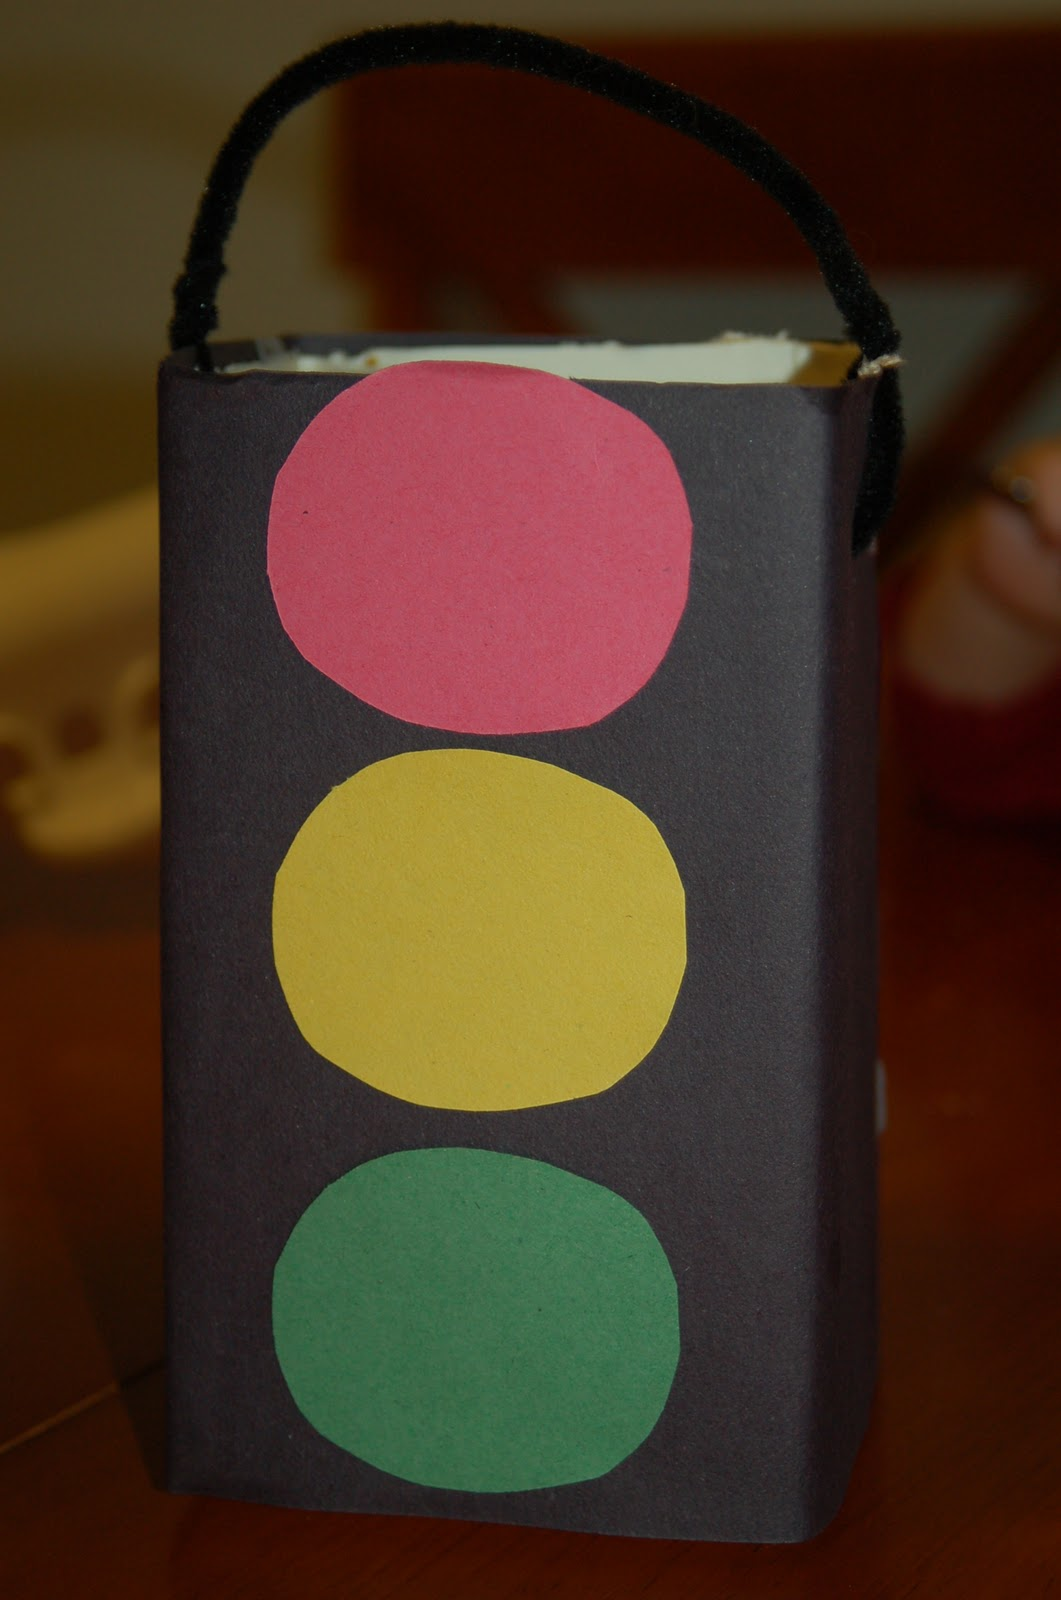 Make Your Own Traffic Light Amp Car Holder